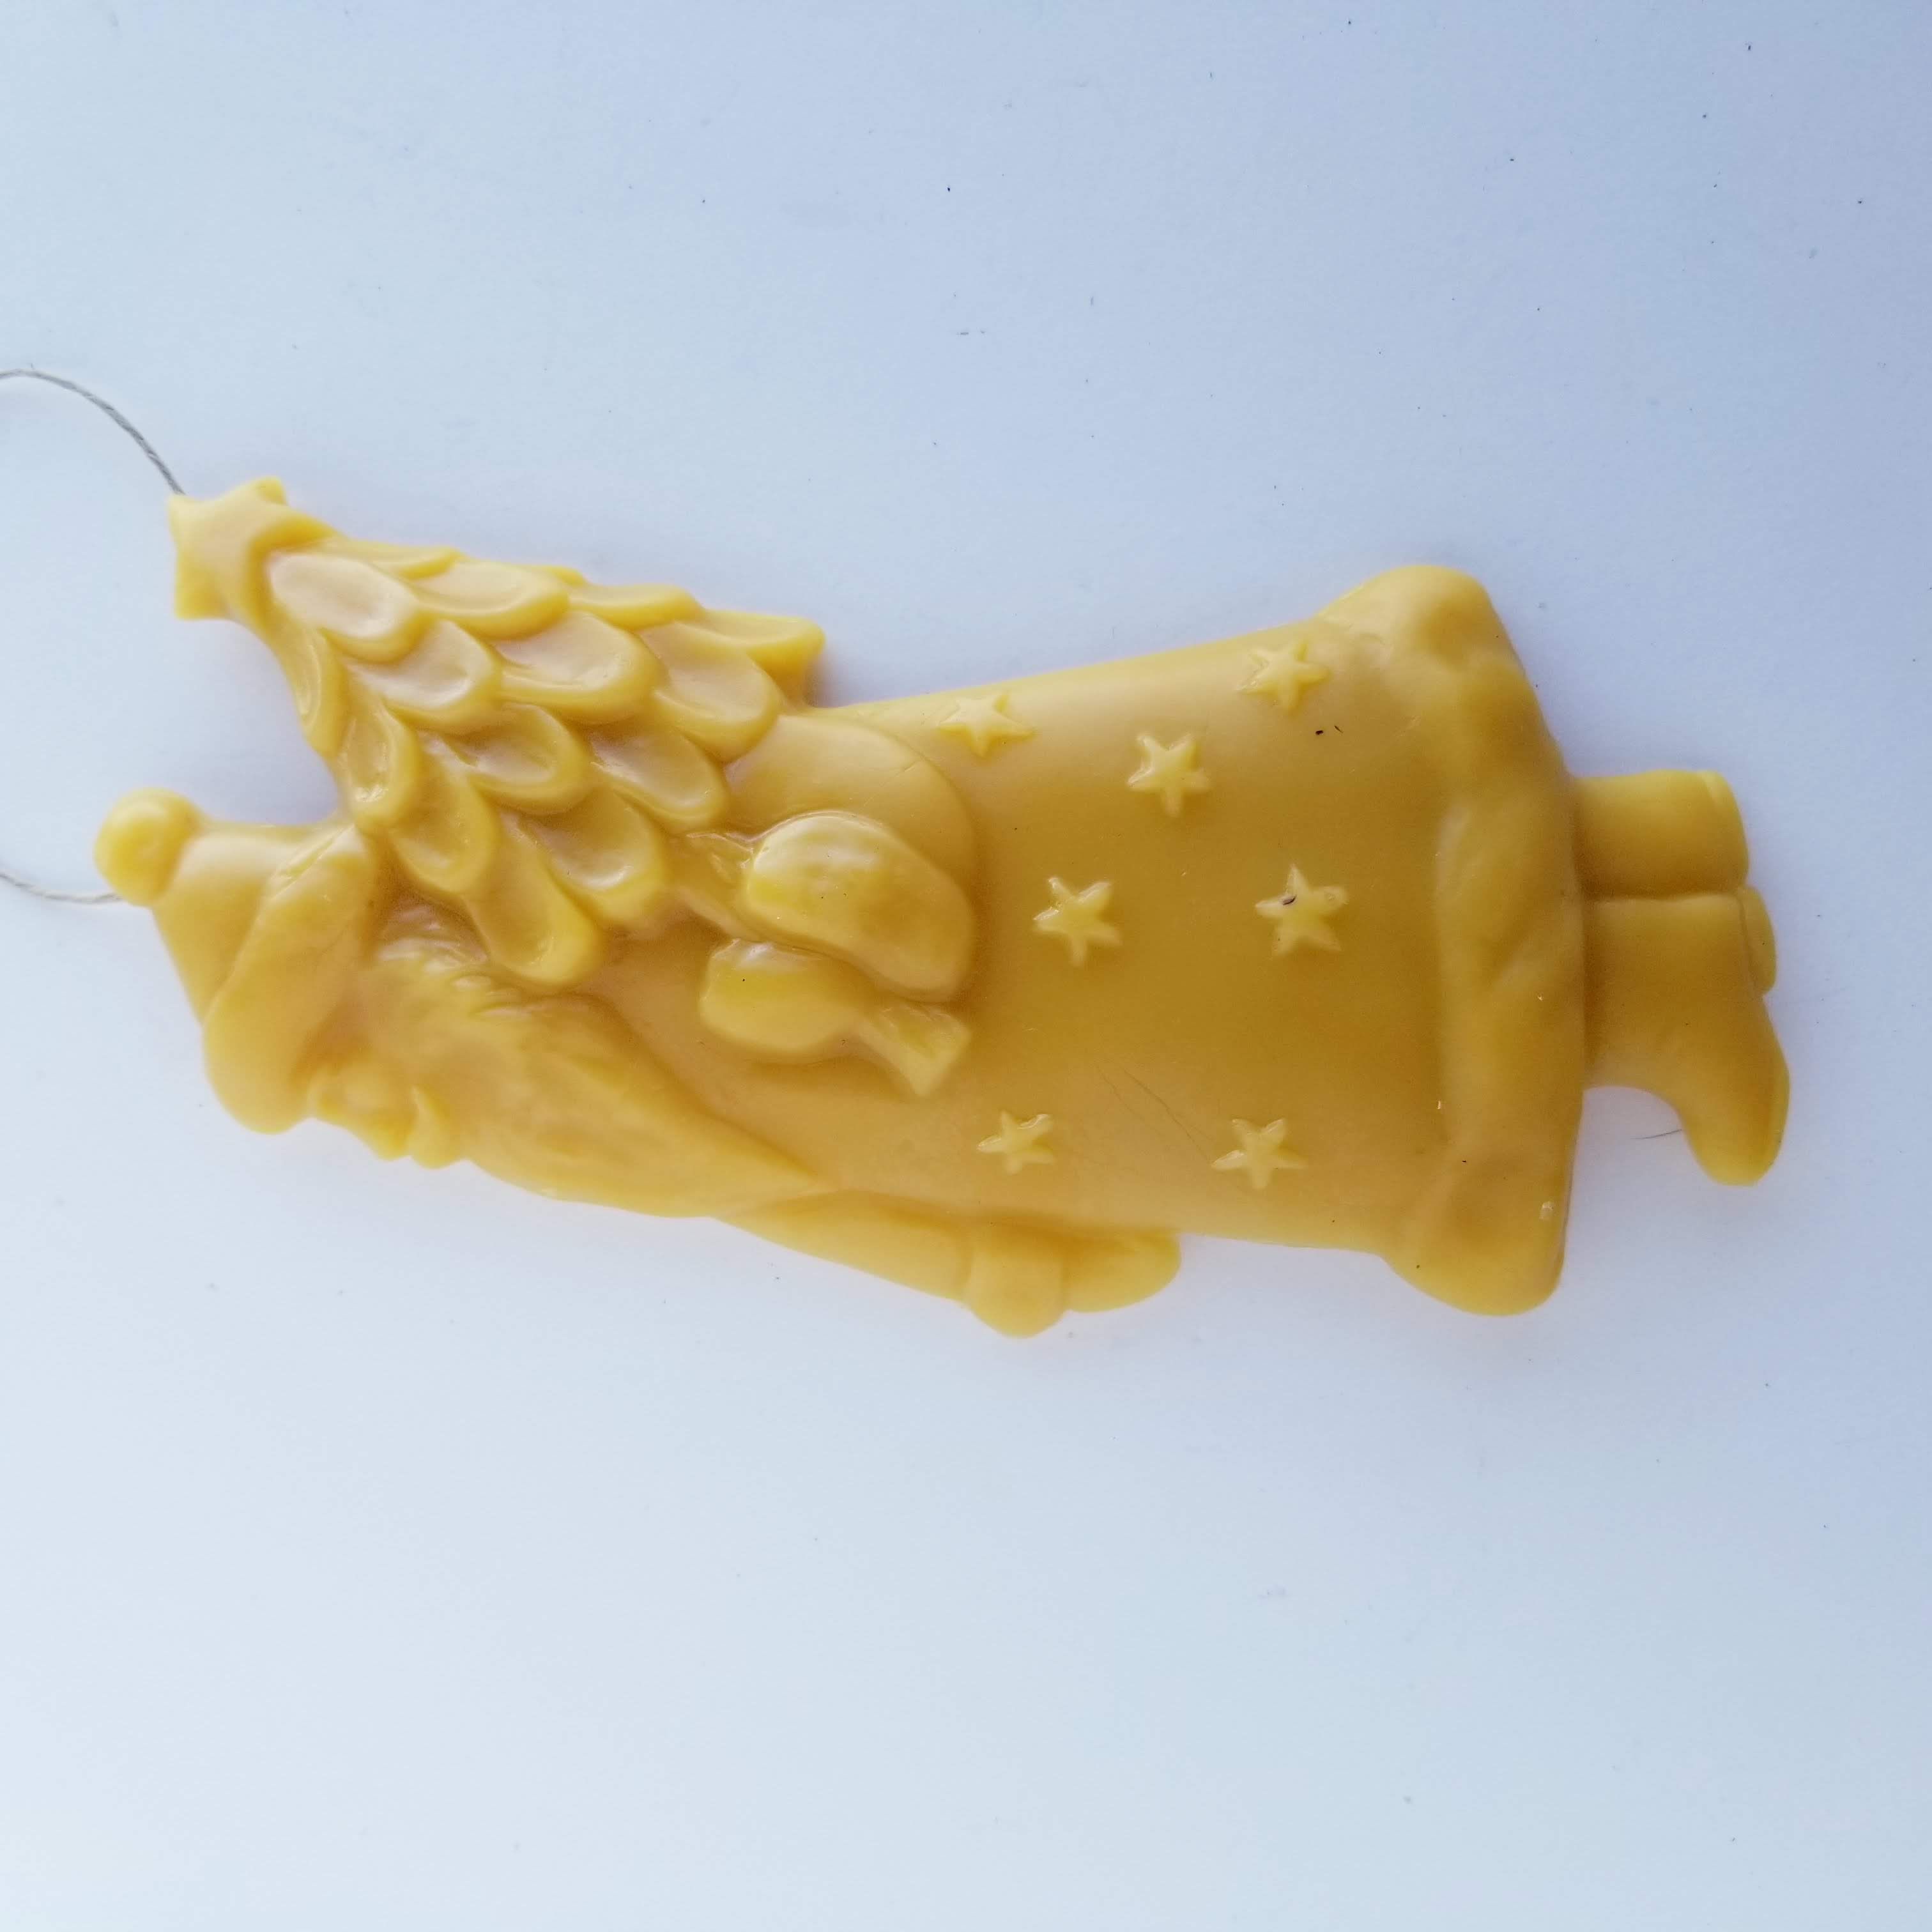 Saint Nick Bringing the Christmas Tree Ornament - Yellow Beeswax